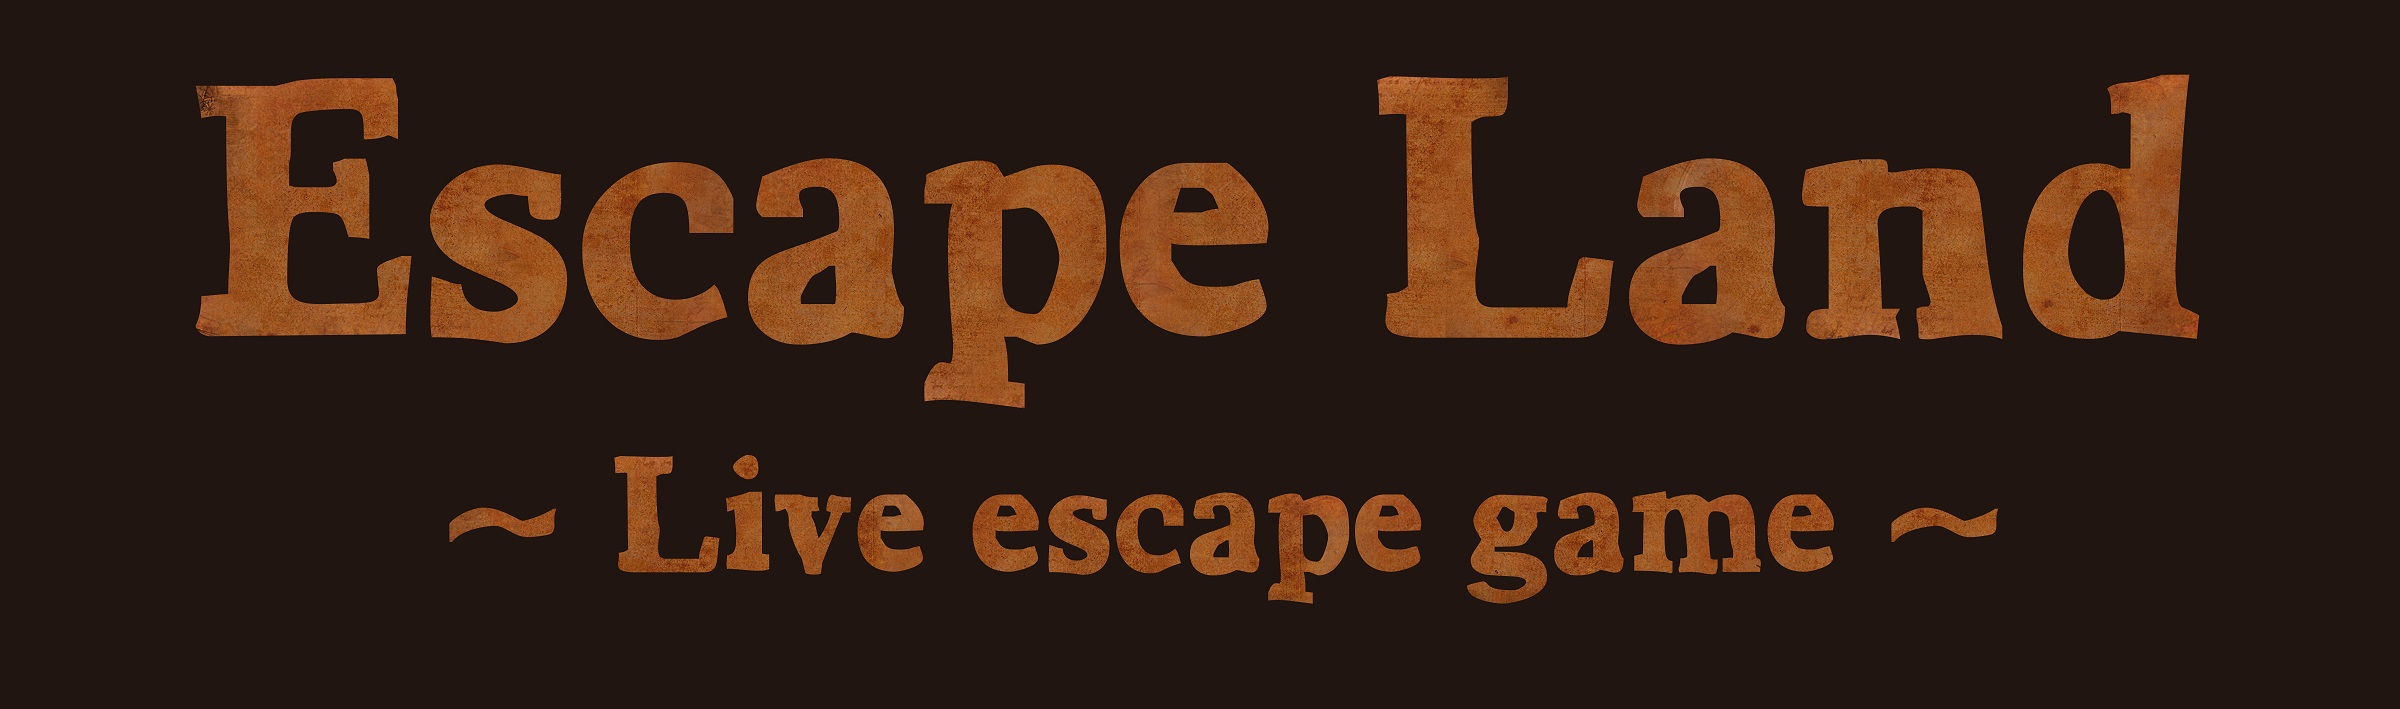 Escape Land - Live  Escape Game